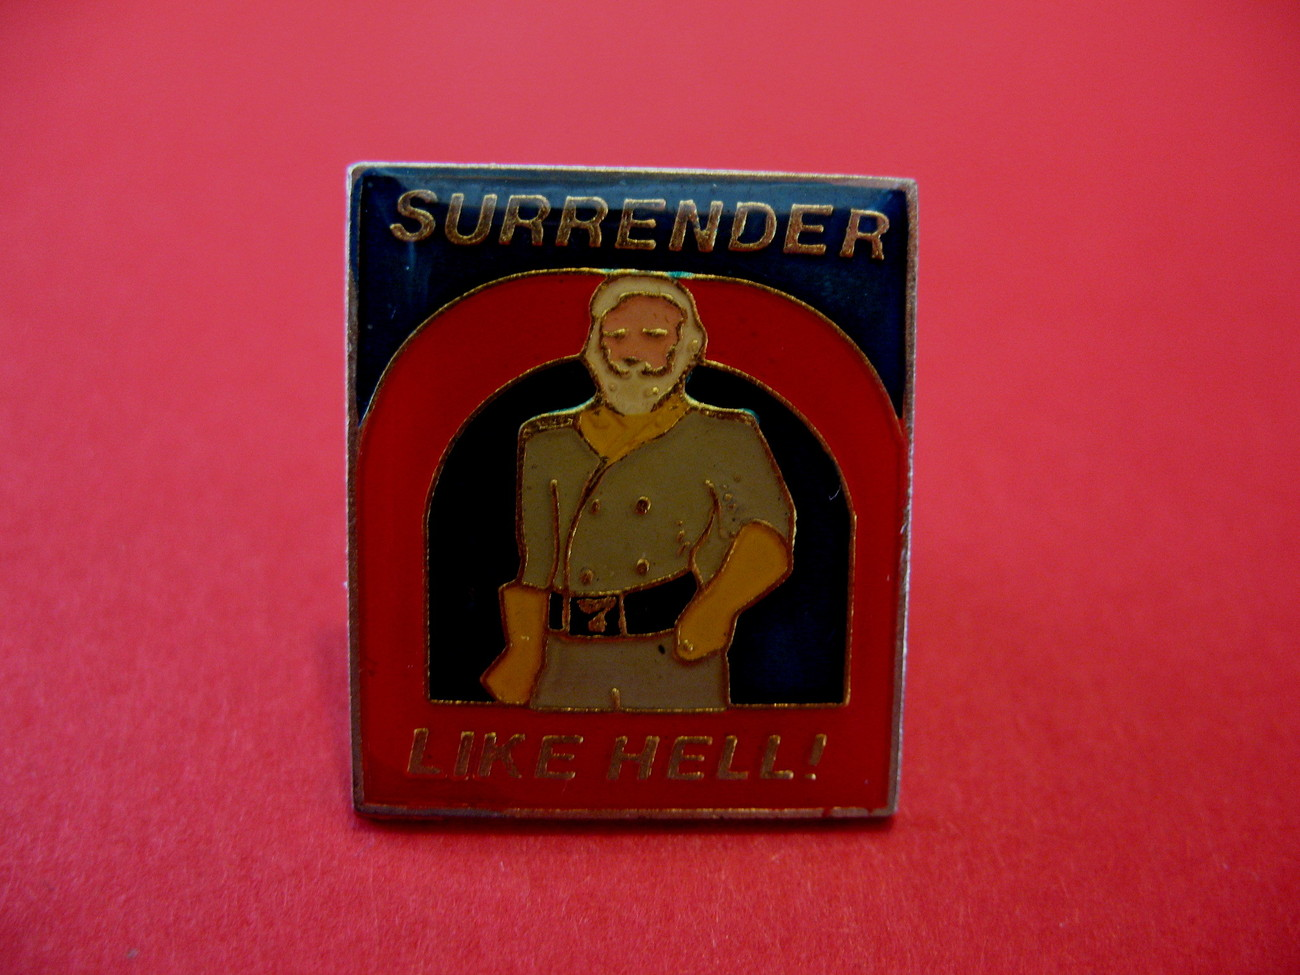 Surrender Like Hell! Collector Souvenir Joke Lapel Pin Hat Pin Vintage Humor